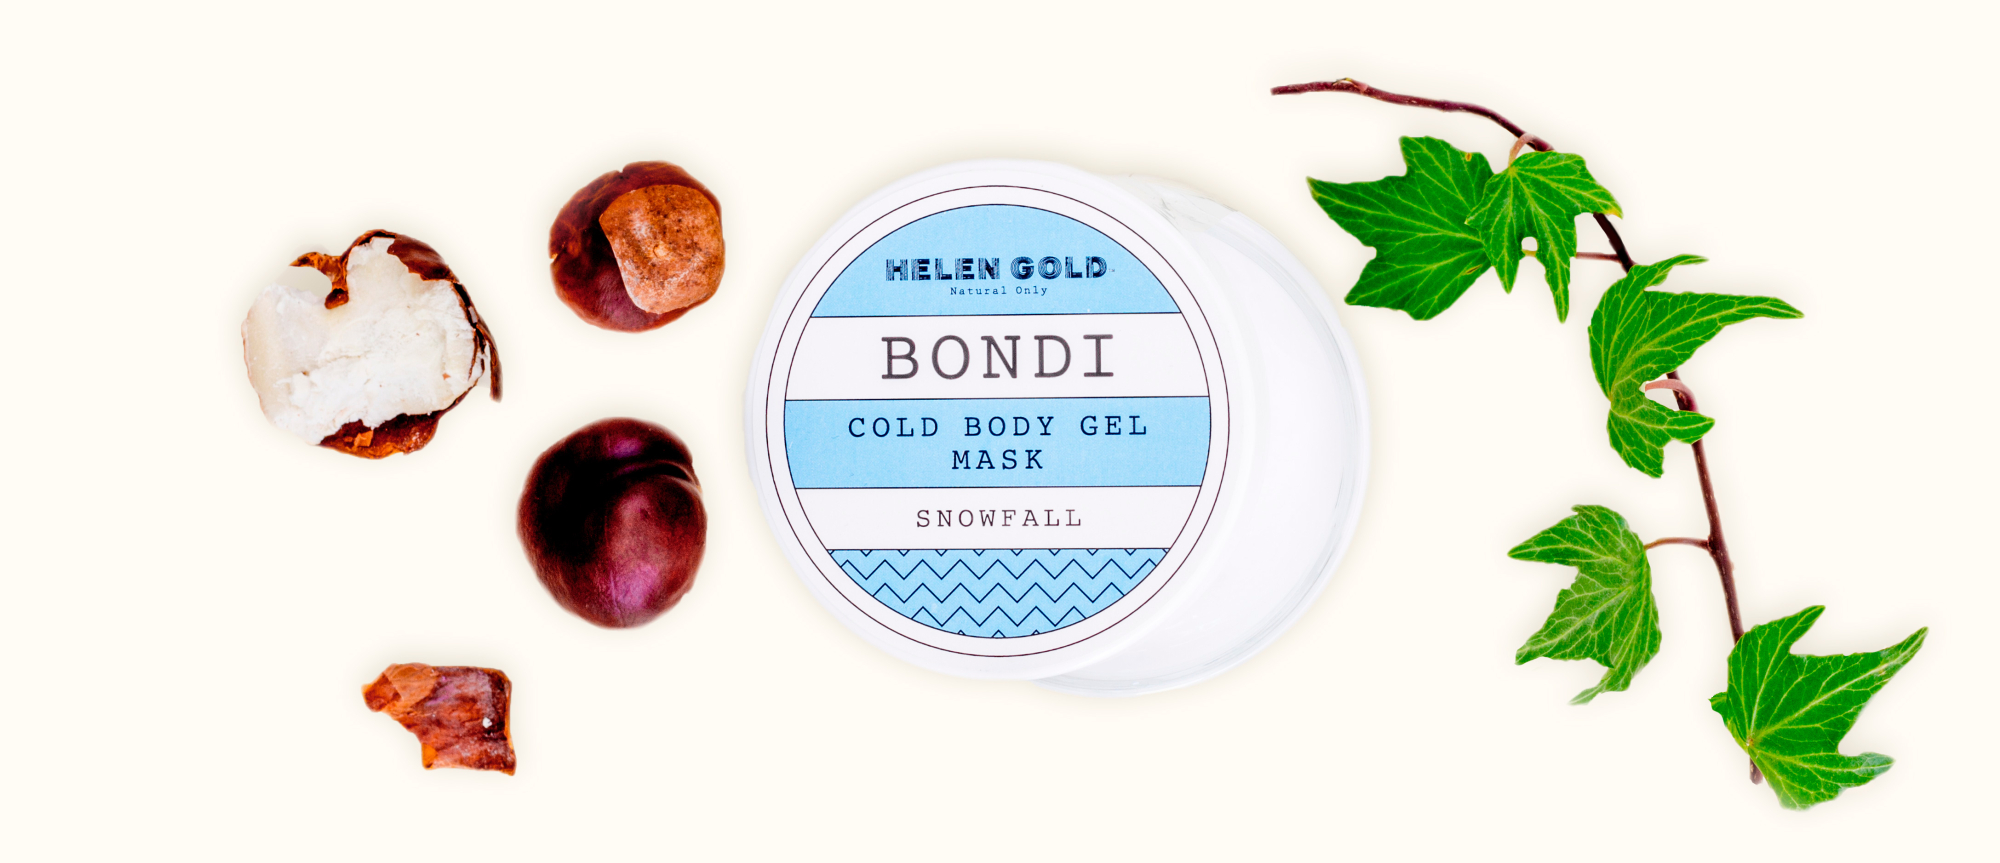 Средства для тела Snowfall Cold Body Gel Mask серии Bondi от Helen Gold, аромат - , 250 г